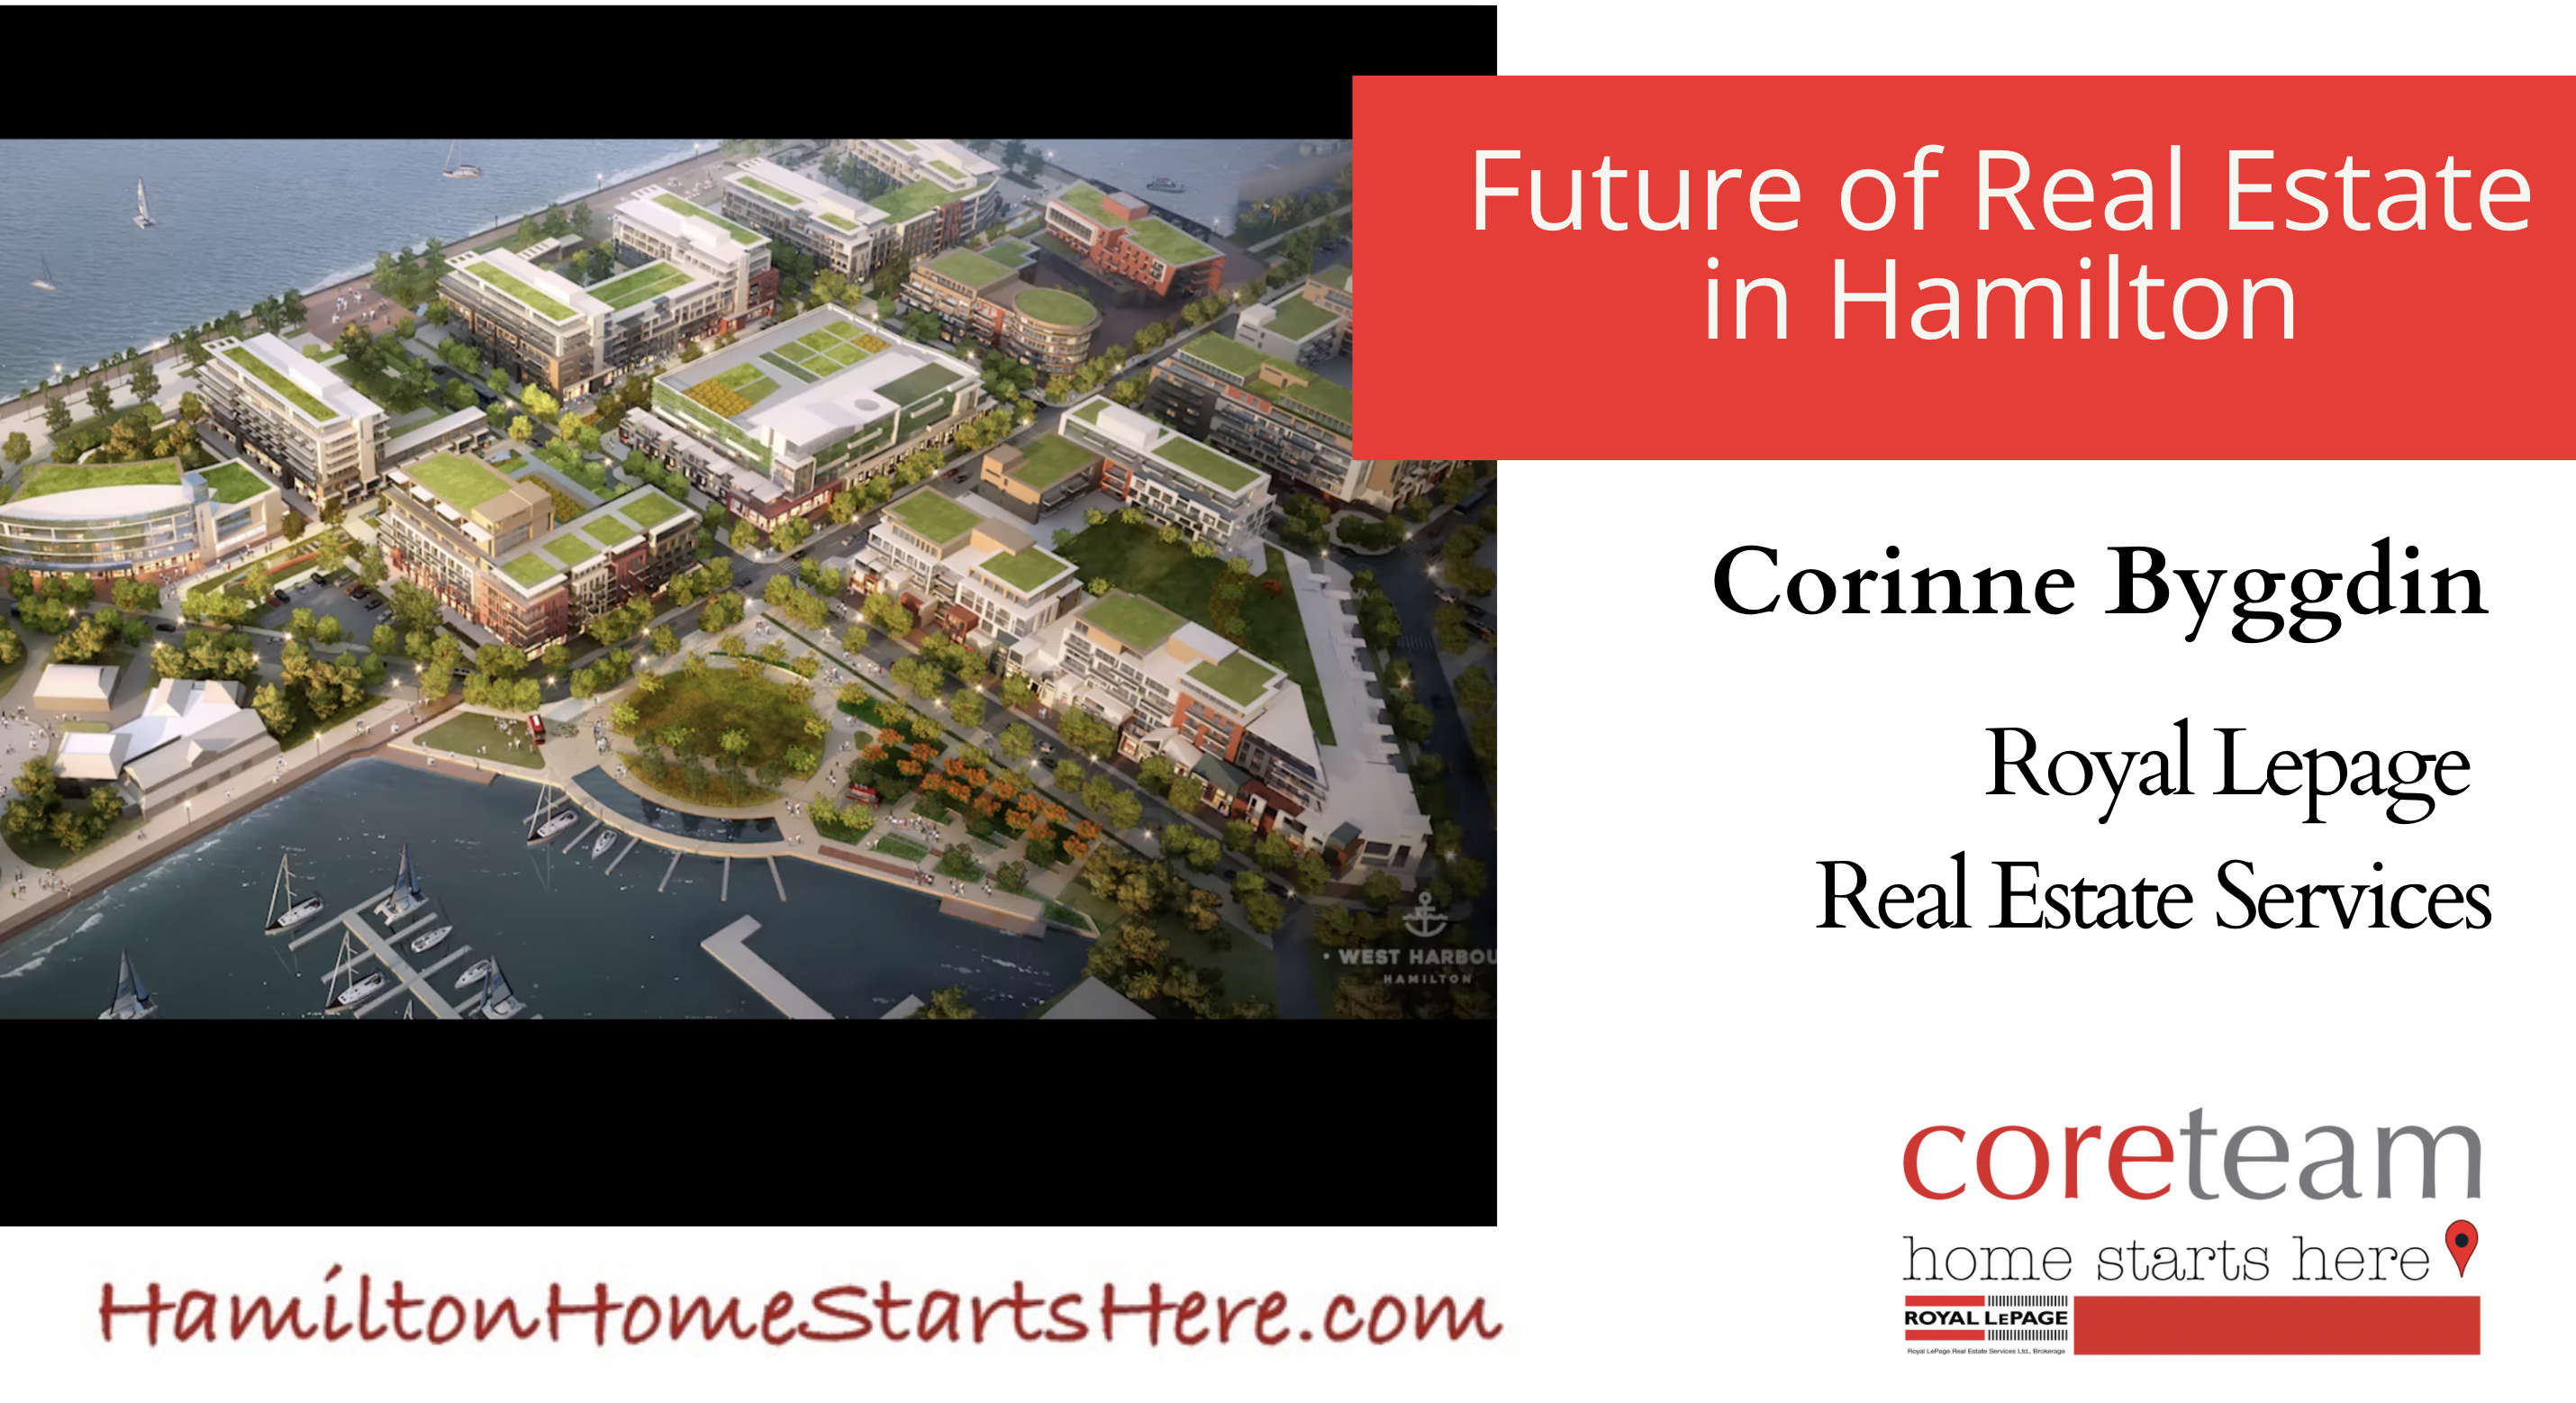 Future of Real Estate - Click on link for slideshow